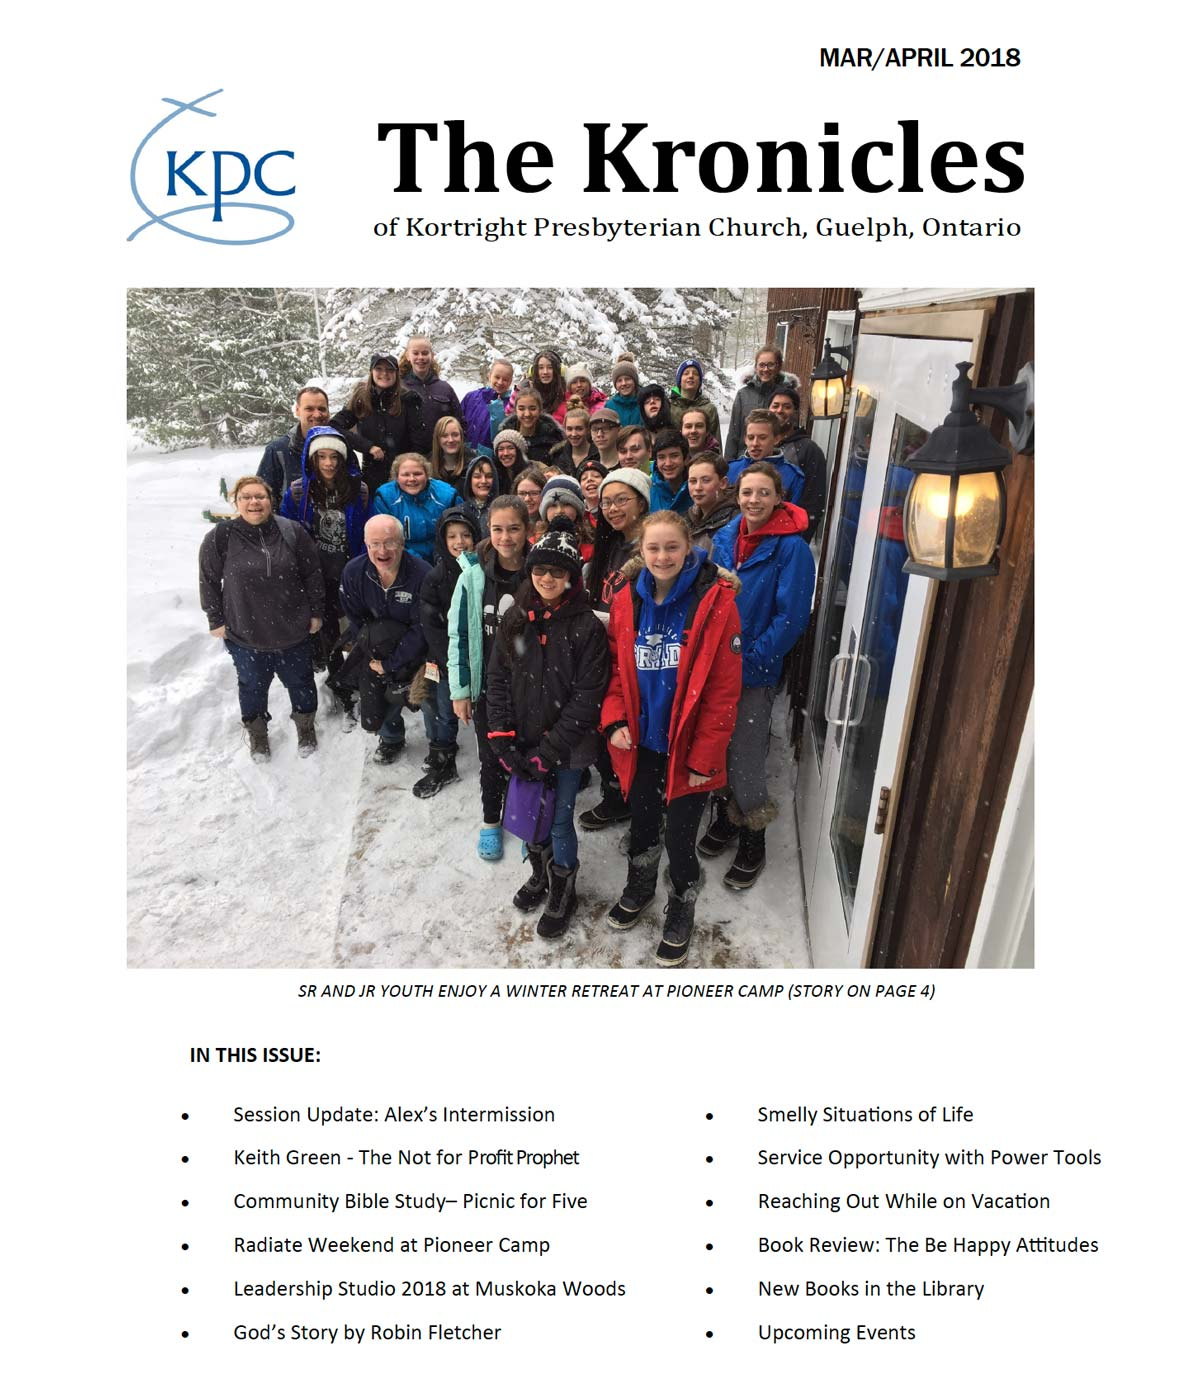 image of the front page of the Kortright Kronicles from March and April 2018